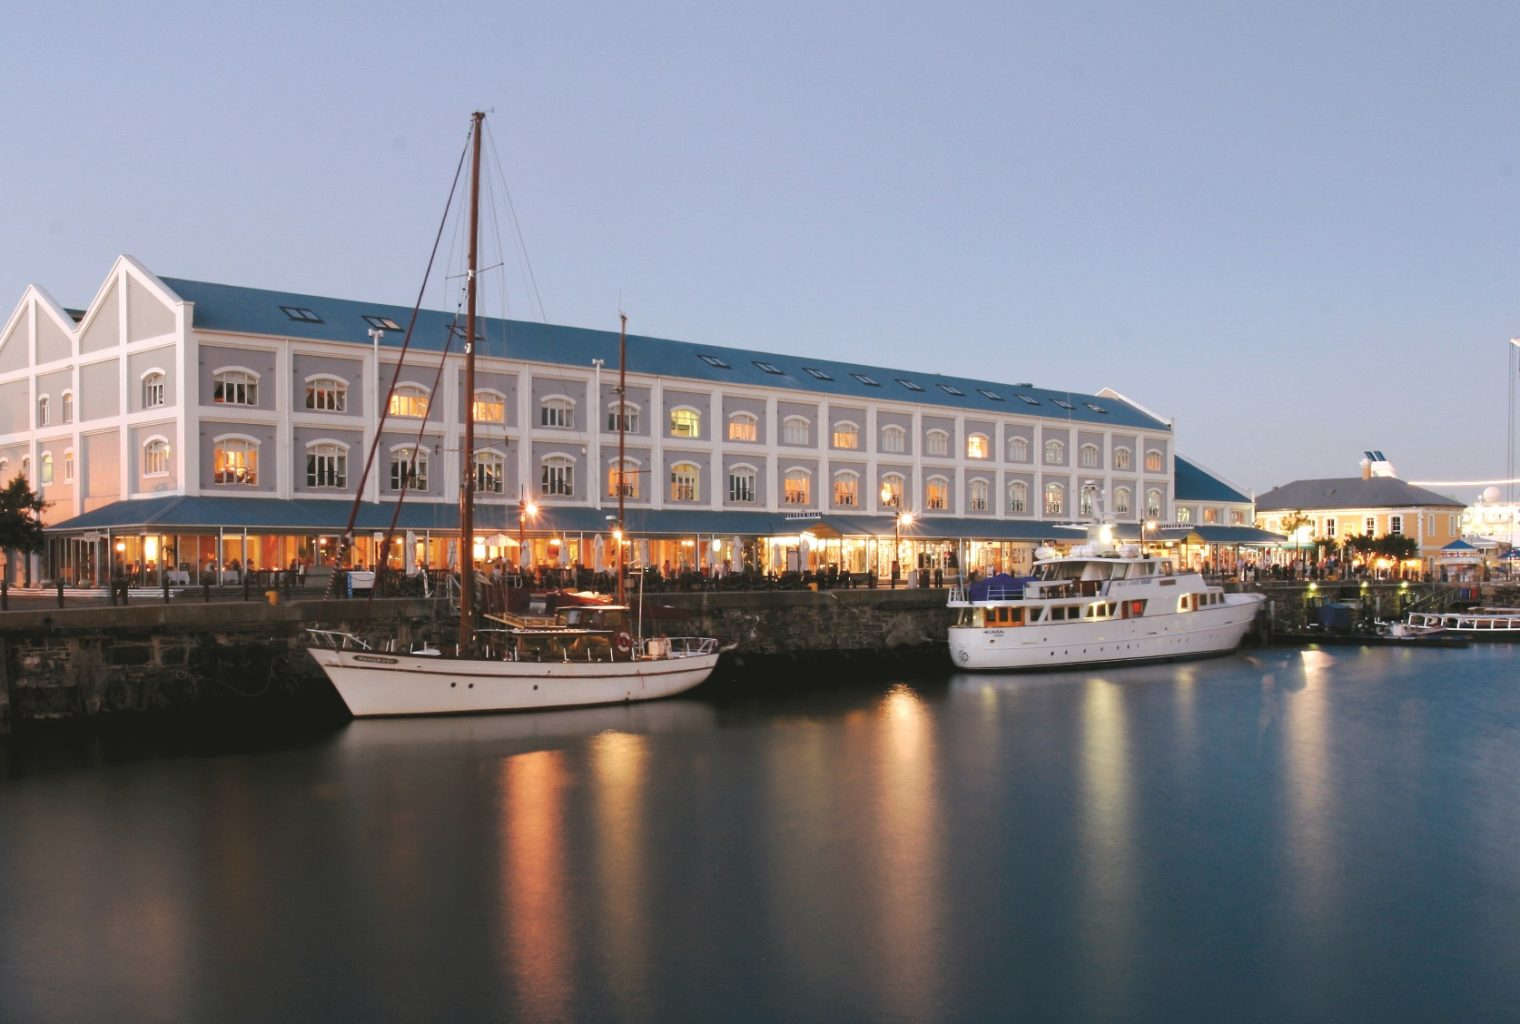 Victoria and Alfred Hotel South Africa Location